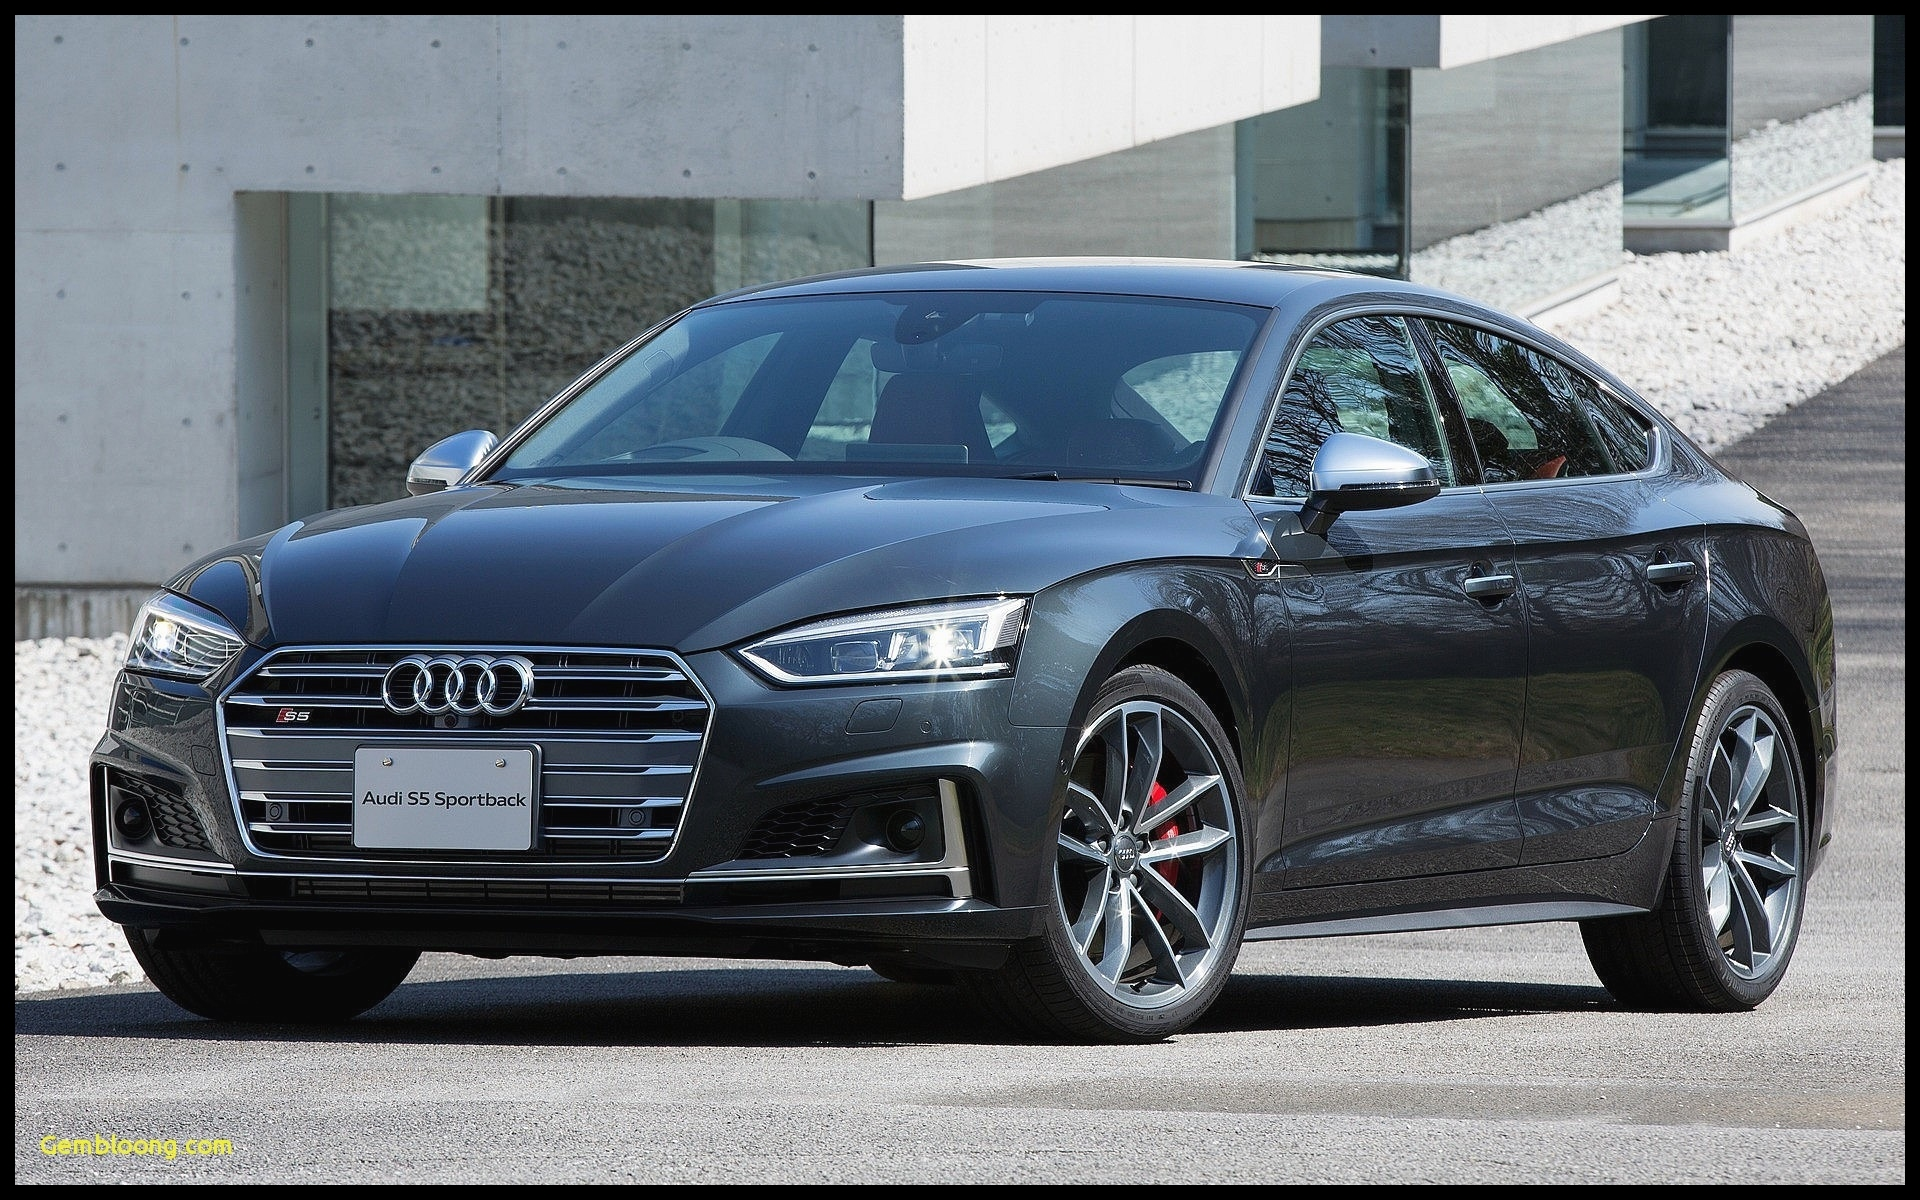 2018 Audi S5 Release Date and Specs Audi S5 2011 Best 2019 Audi A1 Cars 2018